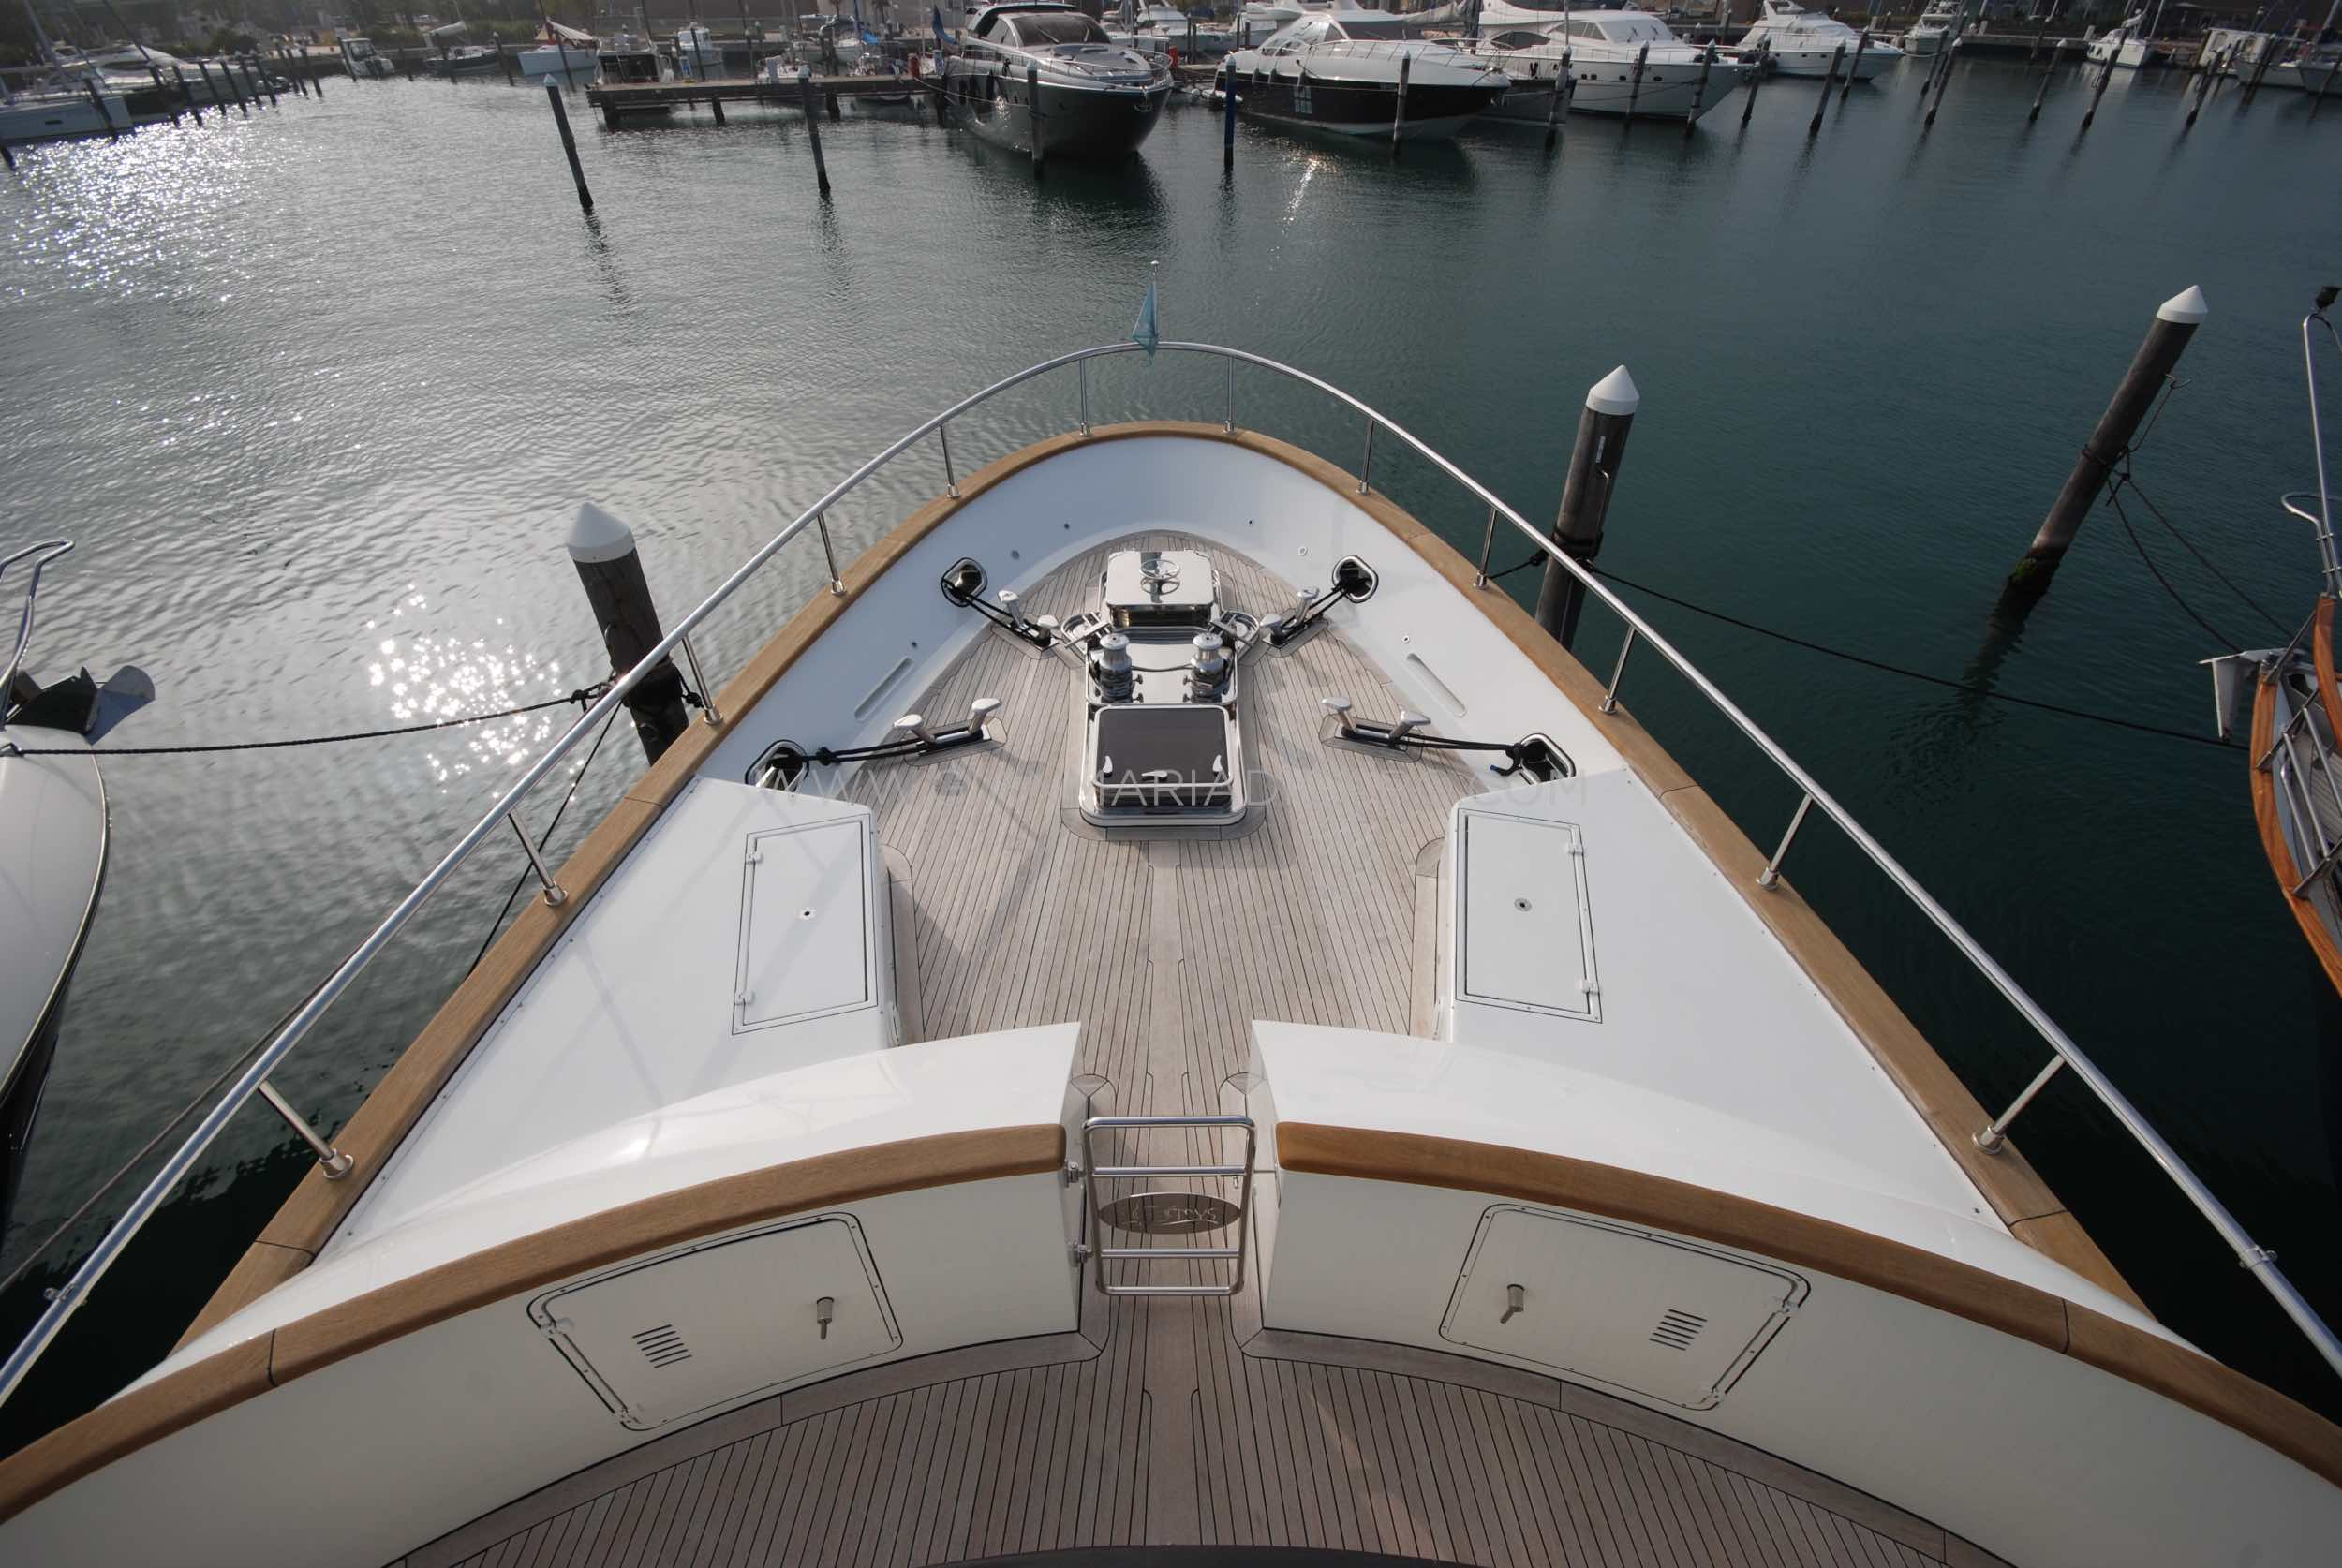 emys-yacht-22-unica-for-sale-106.jpg